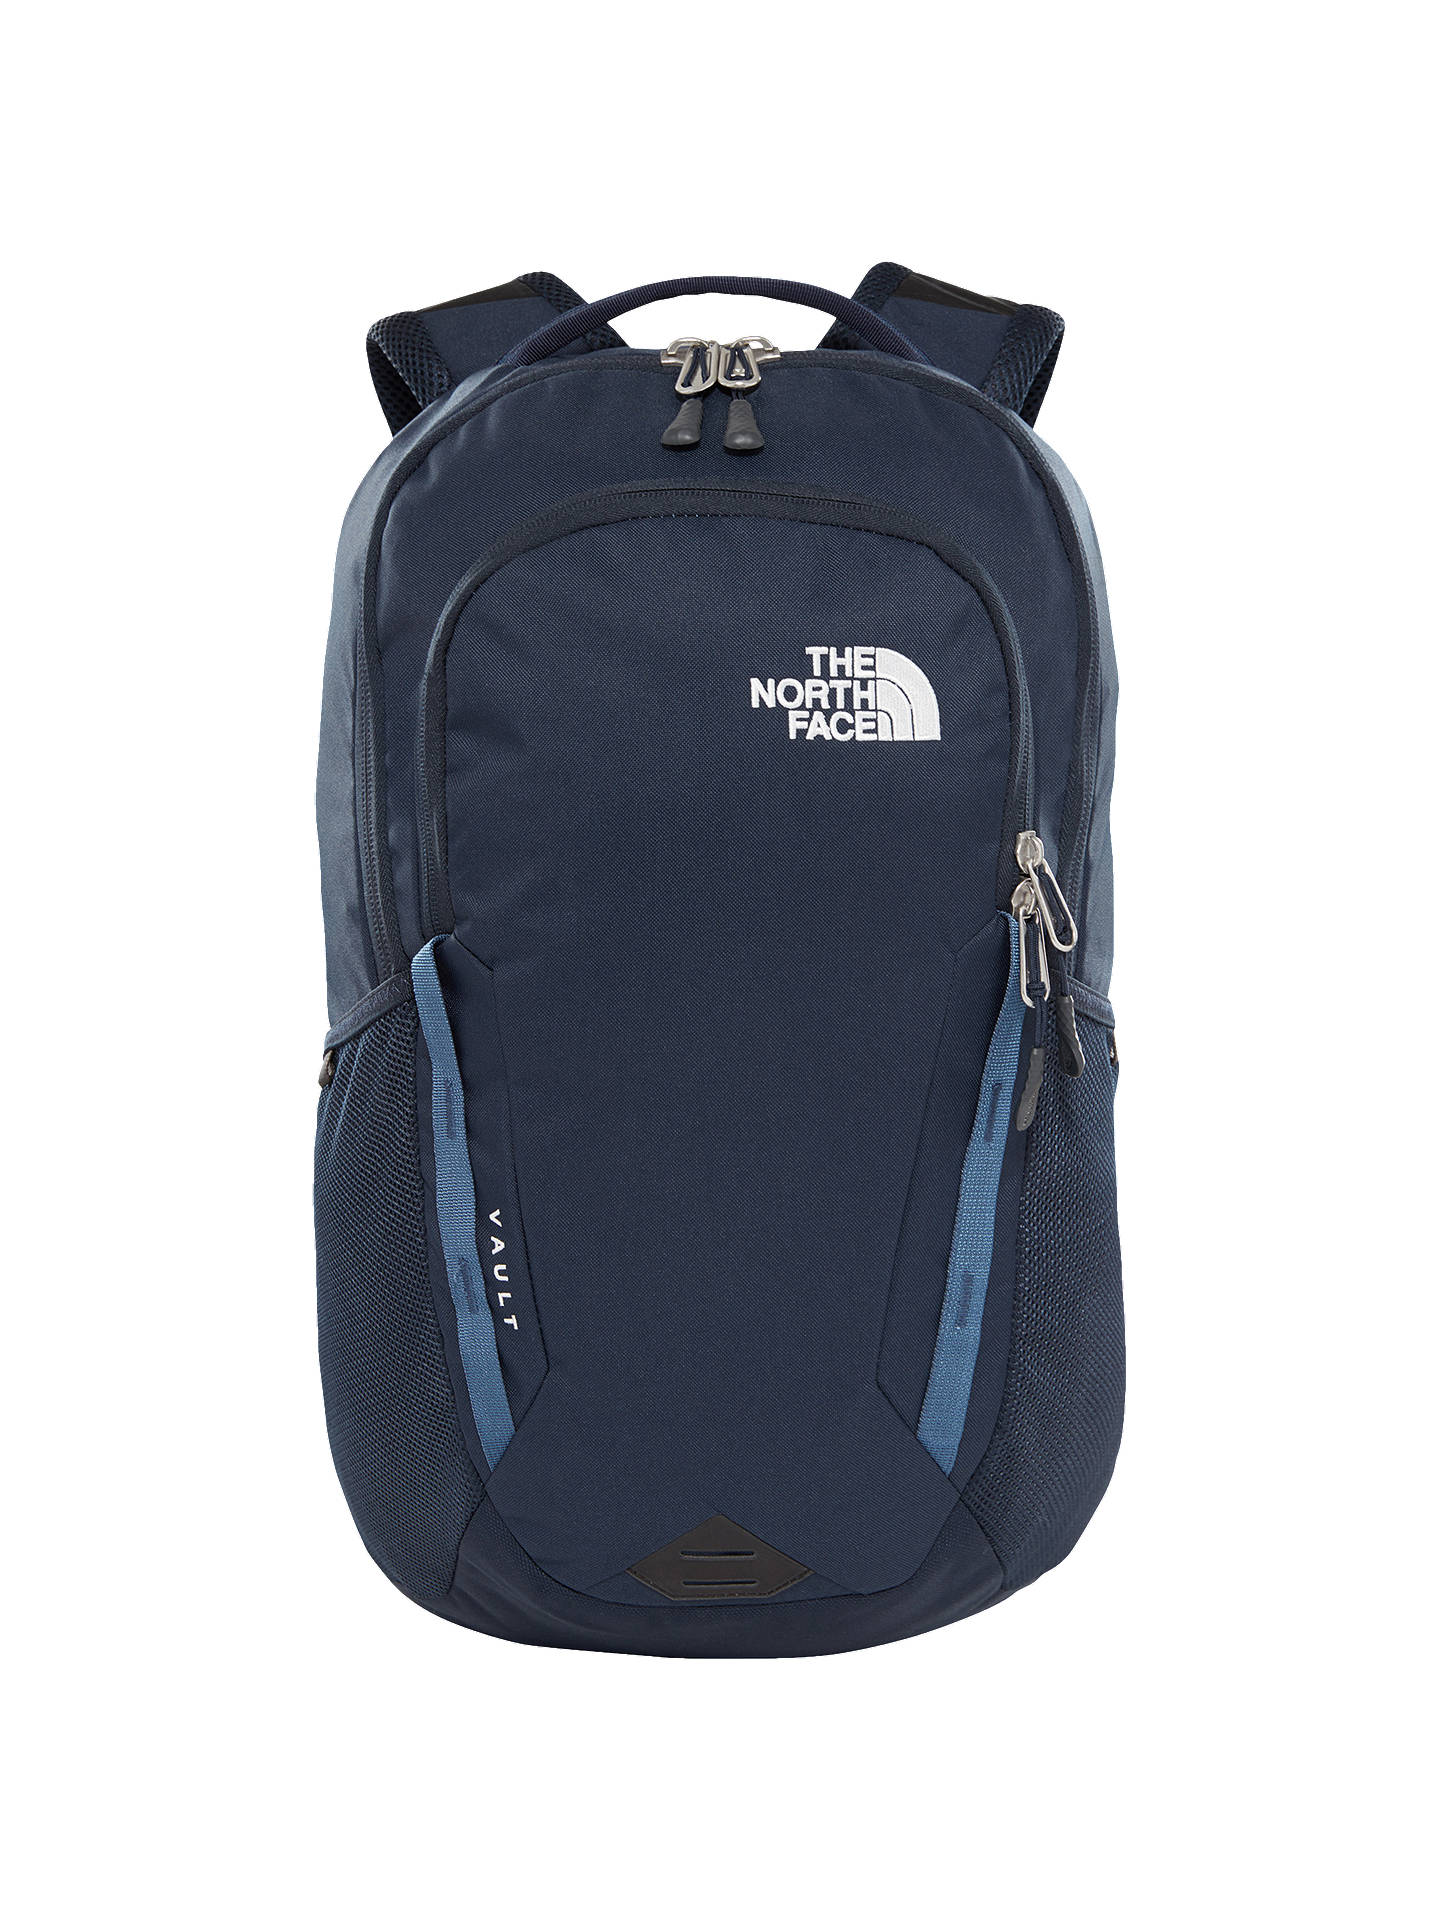 00a8e7ae0 Buy The North Face Vault Backpack, Shady Blue Online at johnlewis.com ...